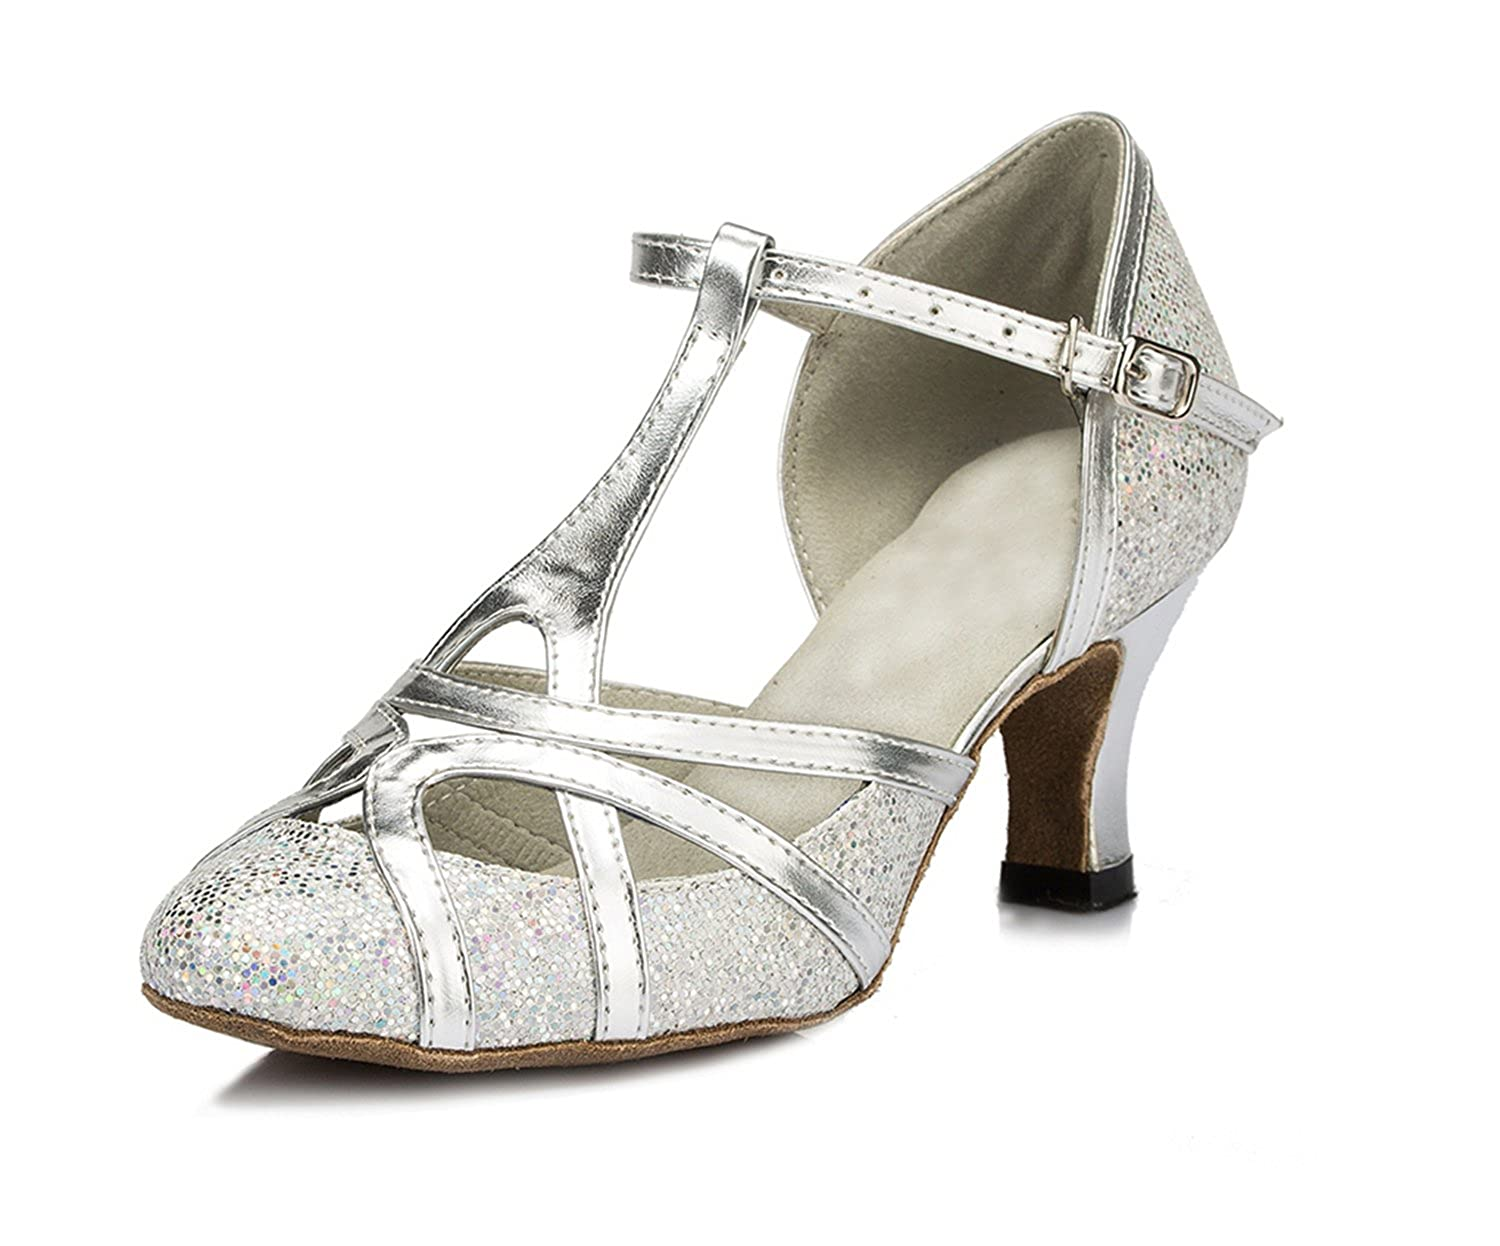 Vintage Style Shoes, Vintage Inspired Shoes Minishion Womens T-Strap Glitter Salsa Tango Ballroom Latin Dance Shoes Wedding Pumps $29.99 AT vintagedancer.com